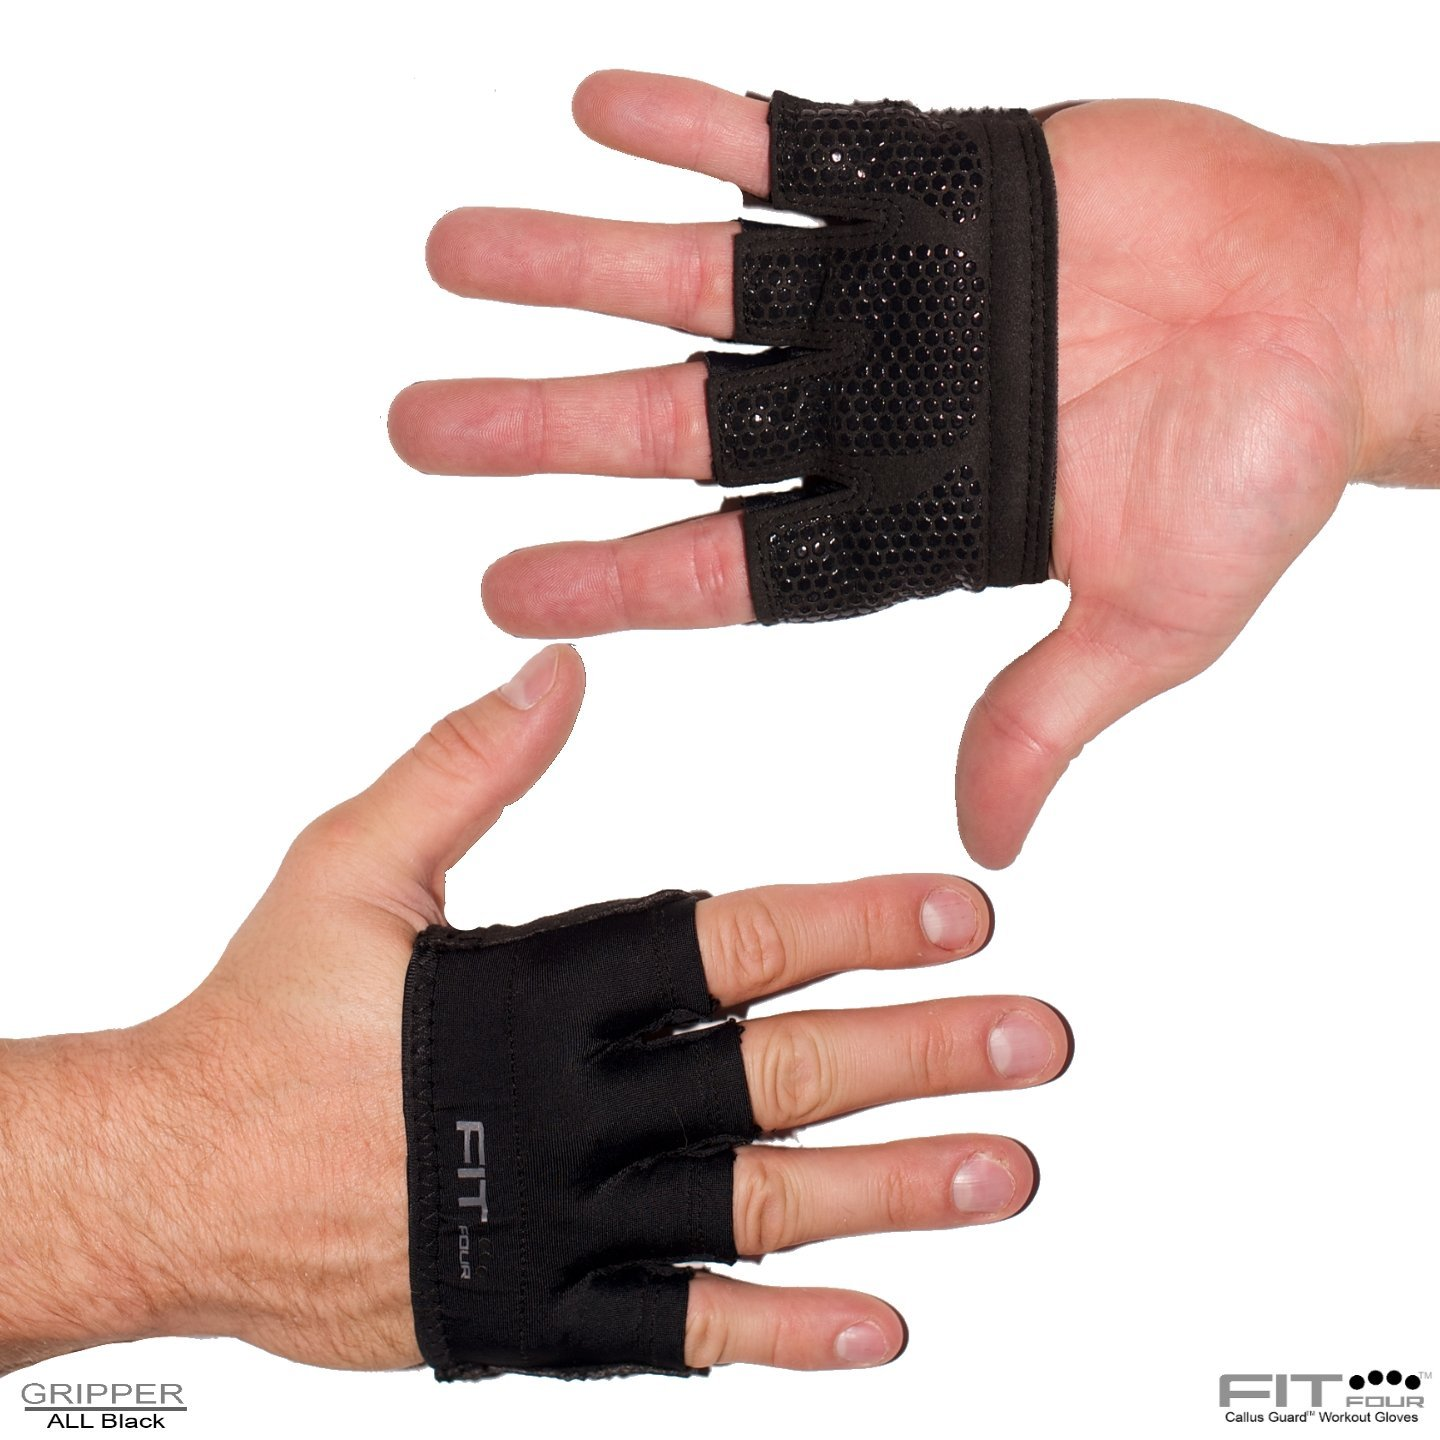 "Fit Four 'The Gripper"" Silicone Grip Weight Lifting Gloves"